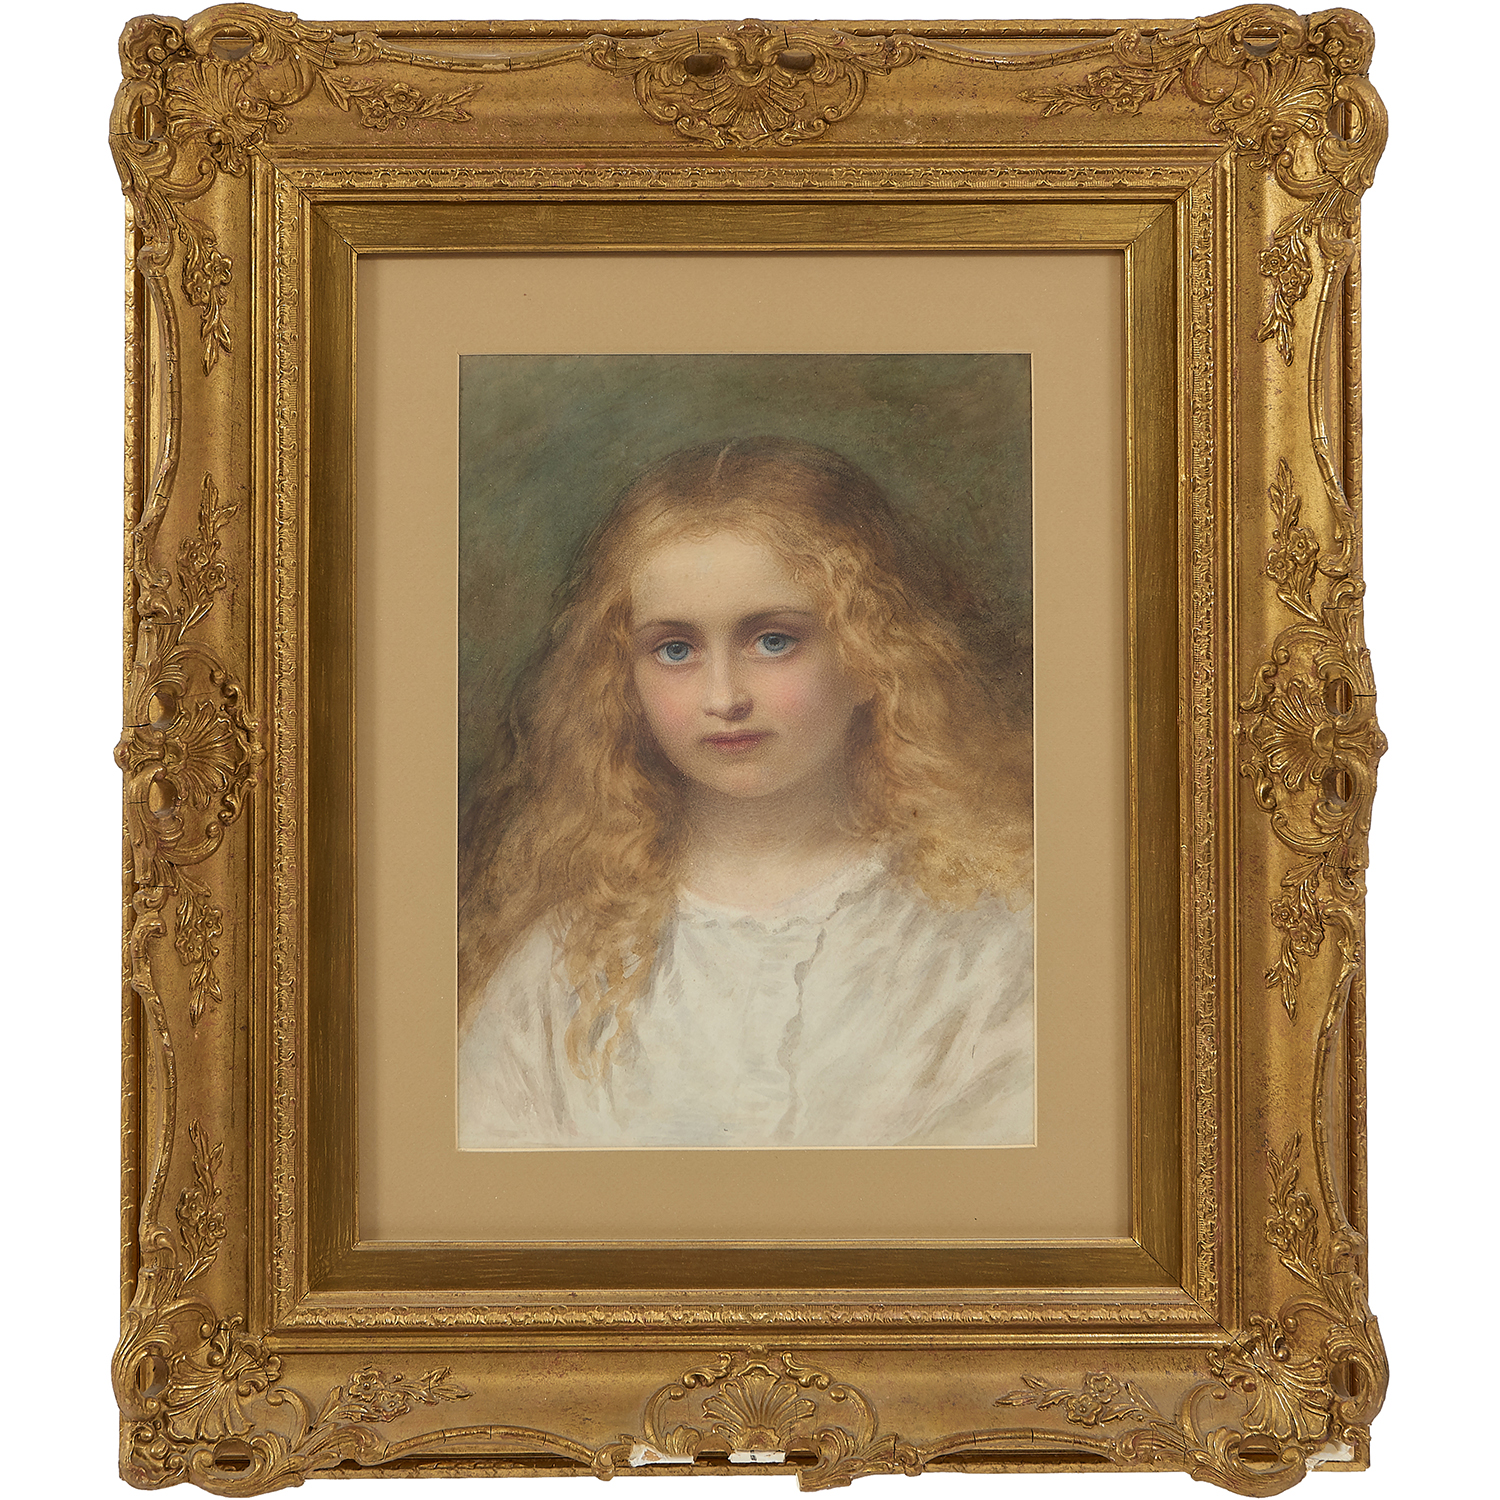 """Follower of Arthur Hughes, (British, 1832-1915), Portrait of a Girl with Golden Hair, watercolor and gouache on paper, 20"""" x 15 1/2"""""""